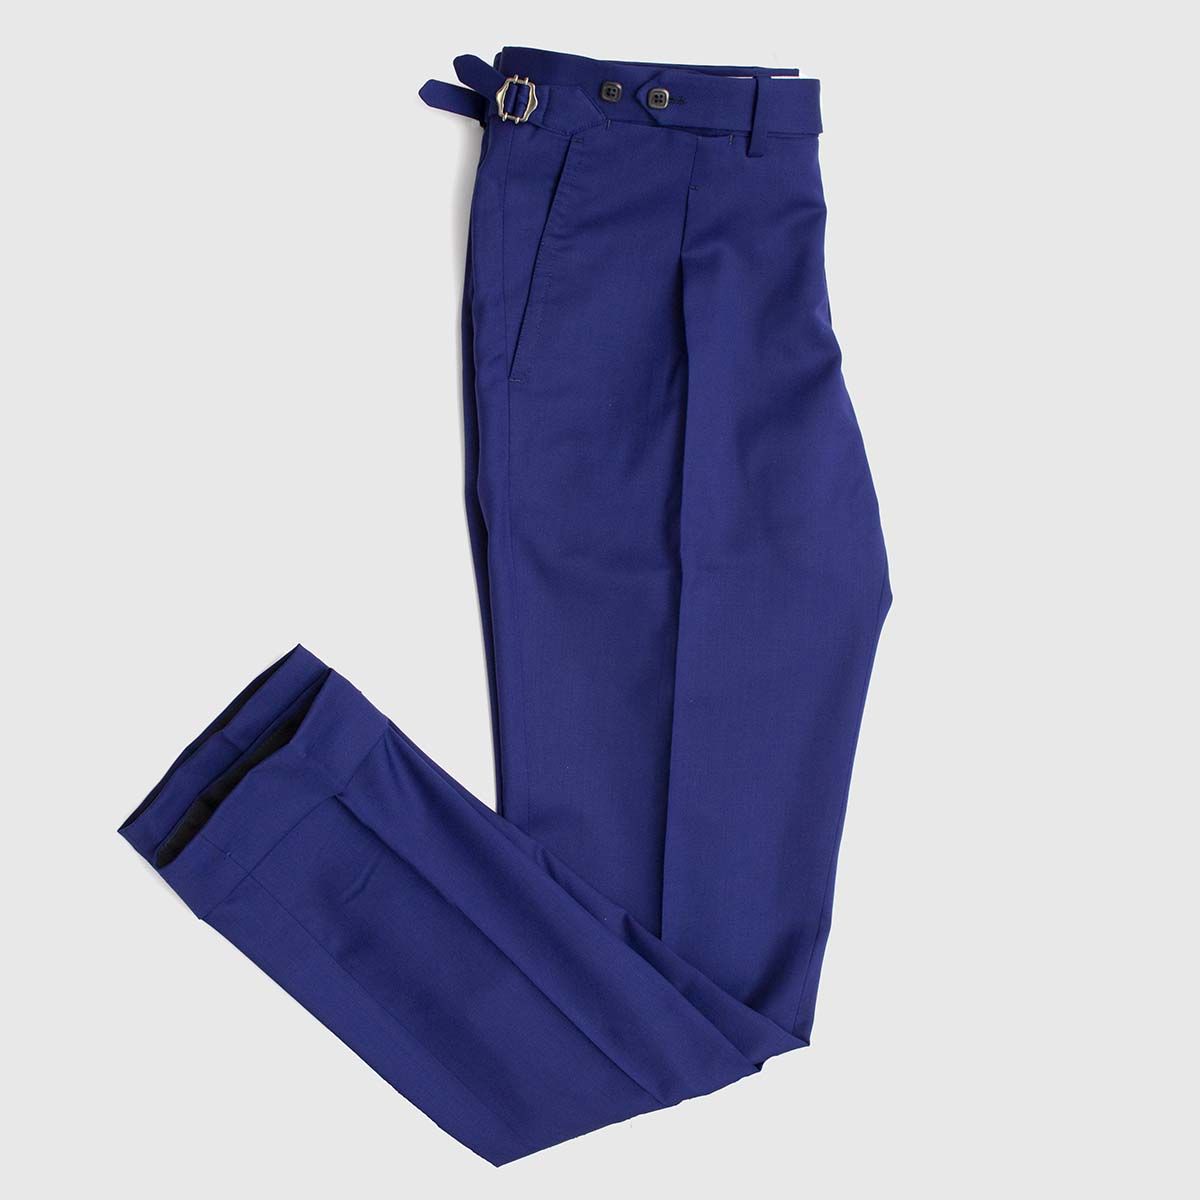 Vitale Barberis Canonico Super 110's One Pleat Trousers